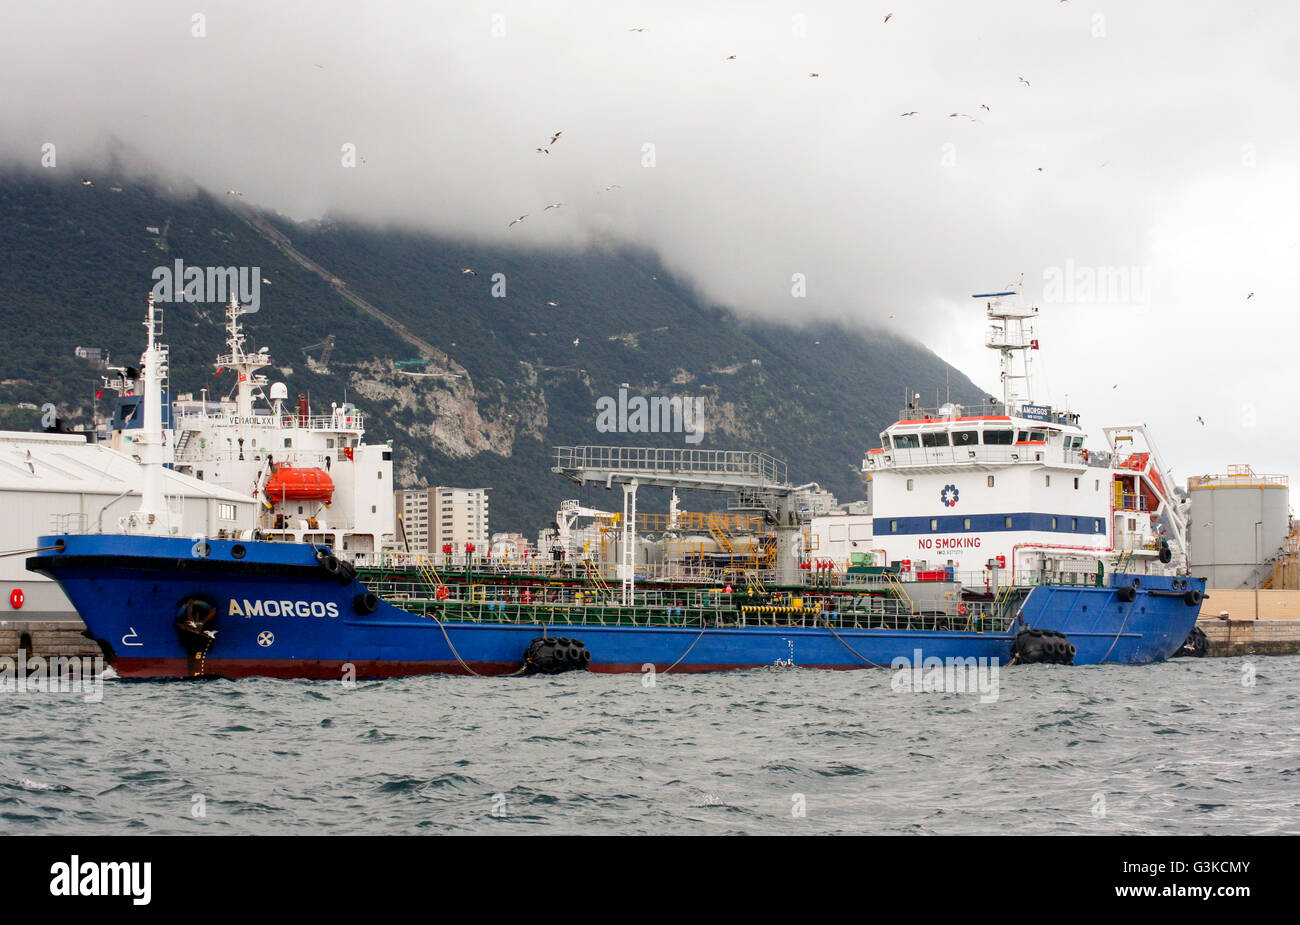 Amorgos Oil Products Tanker Ship off Gibraltar - Stock Image